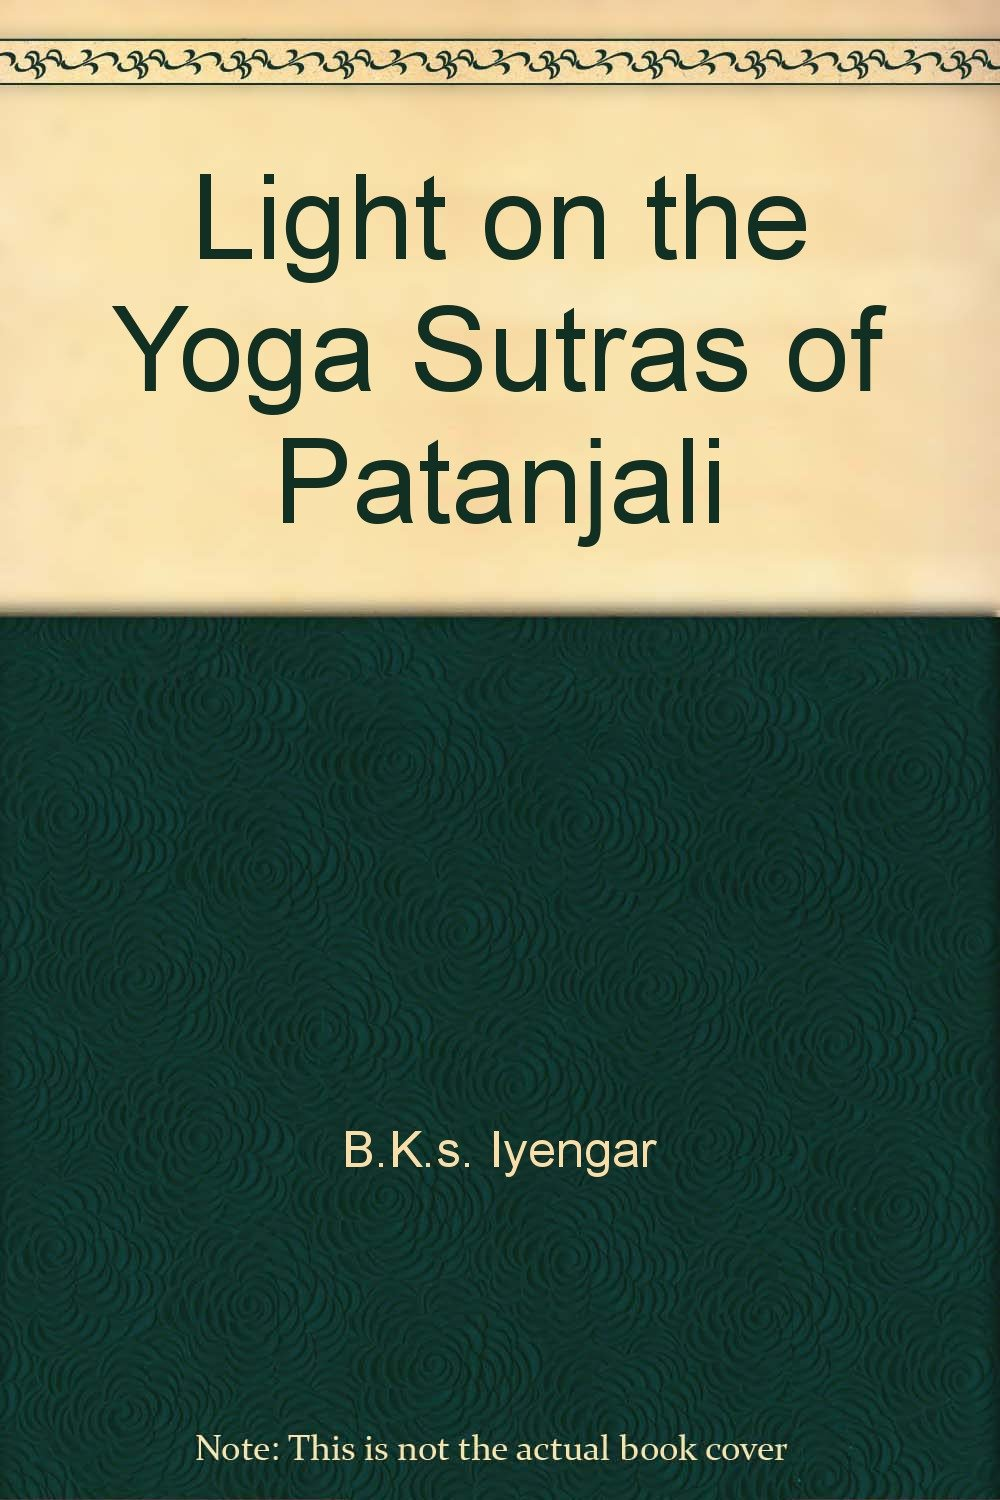 Light on the Yoga Sutras of Patanjali: B.K.s. Iyengar ...